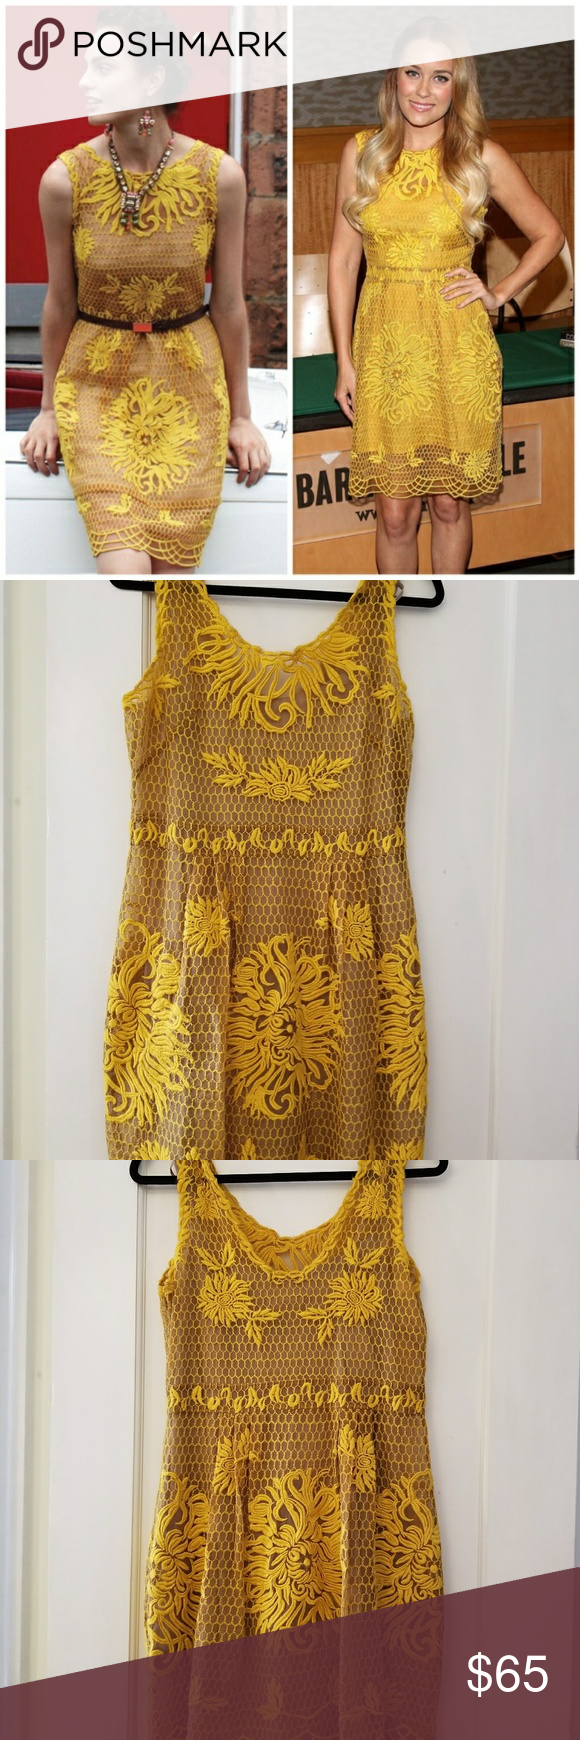 f616f0cfb55d Anthropologie Yoana Baraschi Honeycomb Lace Dress Anthropologie honeycomb/floral  lace dress in a golden yellow color. 100% silk with a viscose slip.